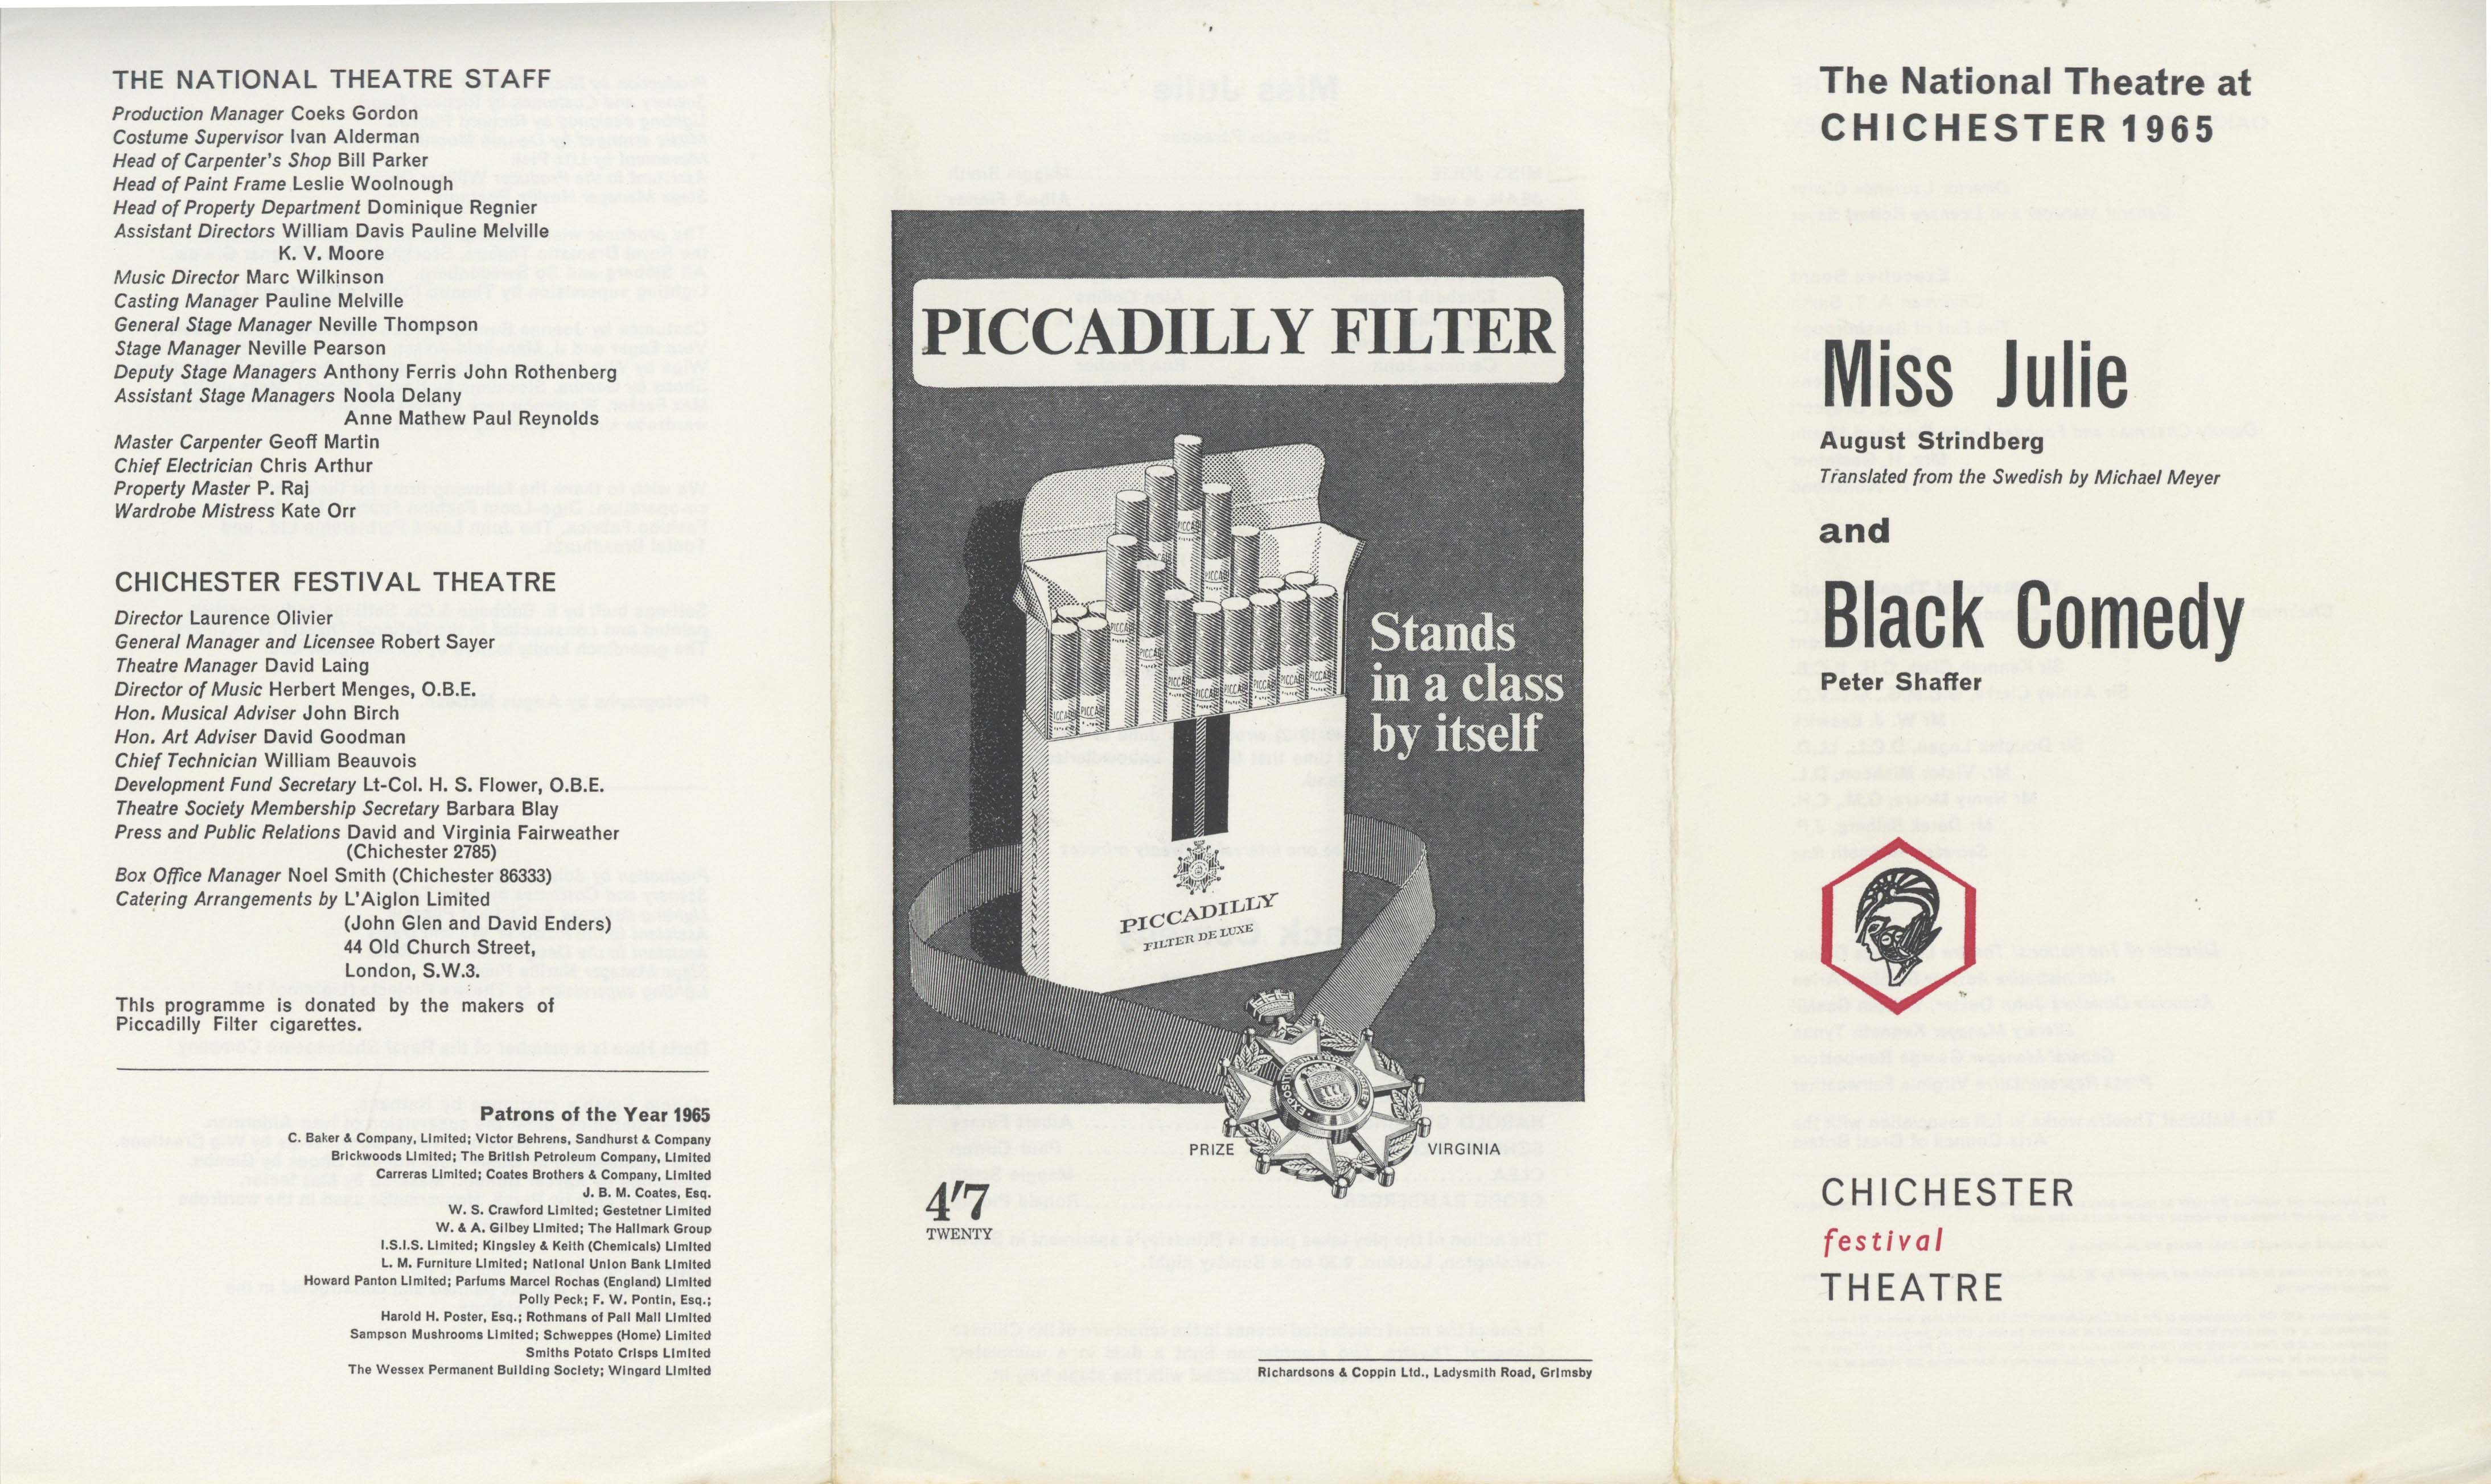 Cast List - Miss Julie, Black Comedy - 1965 - 1 of 2